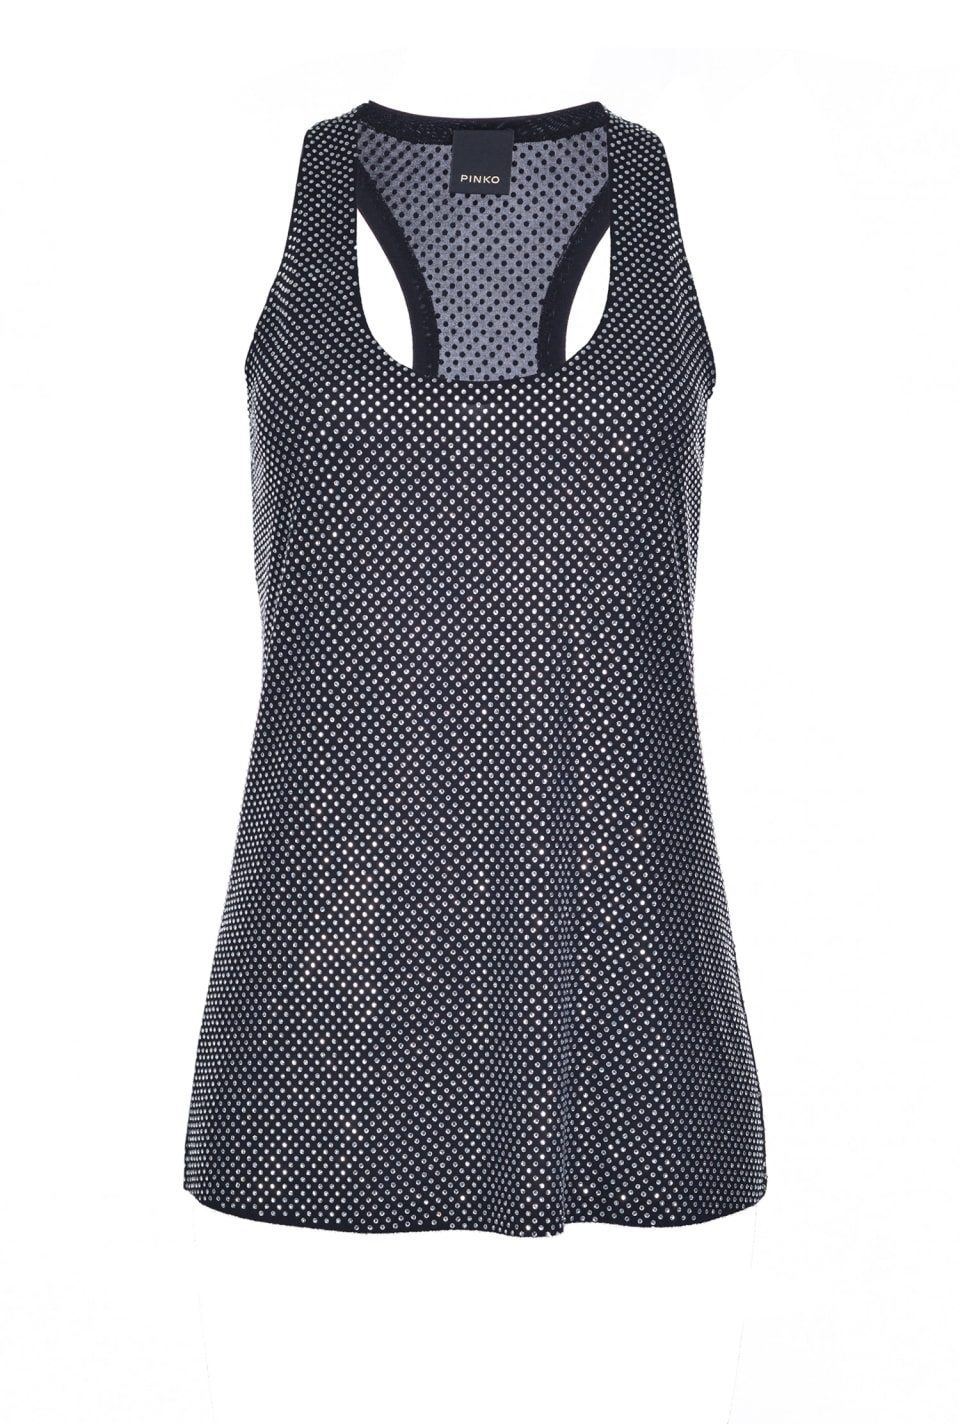 Full-rhinestone tank top